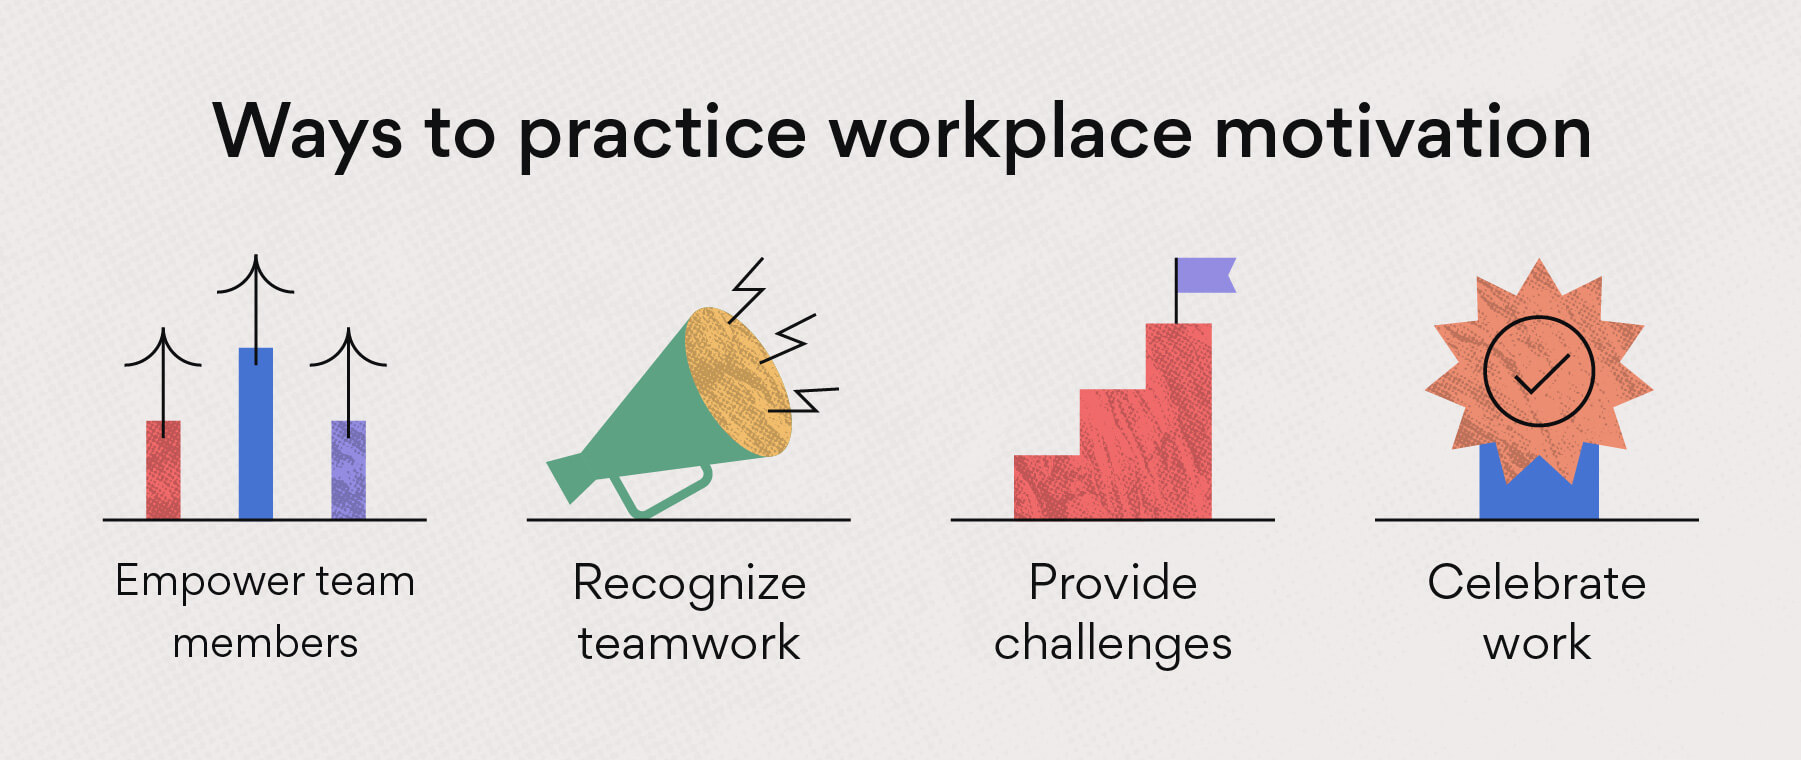 Ways to practice workplace motivation